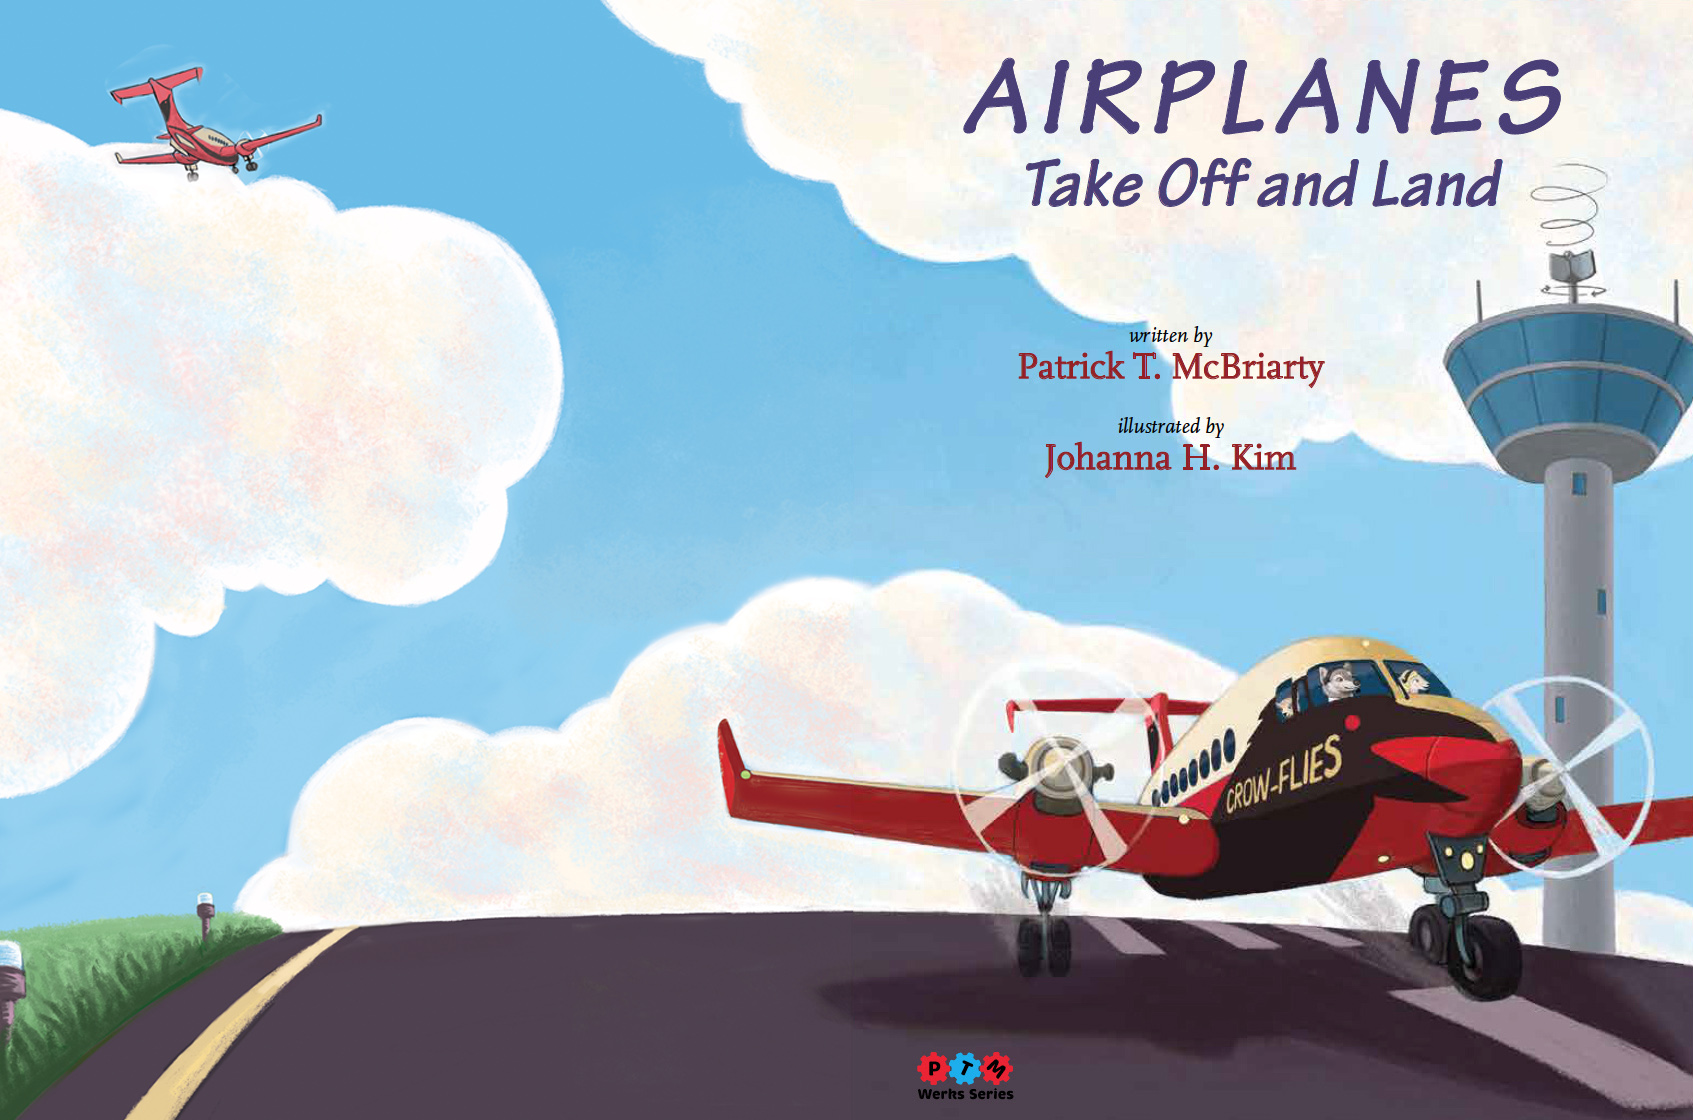 Airplanes book cover.jpg